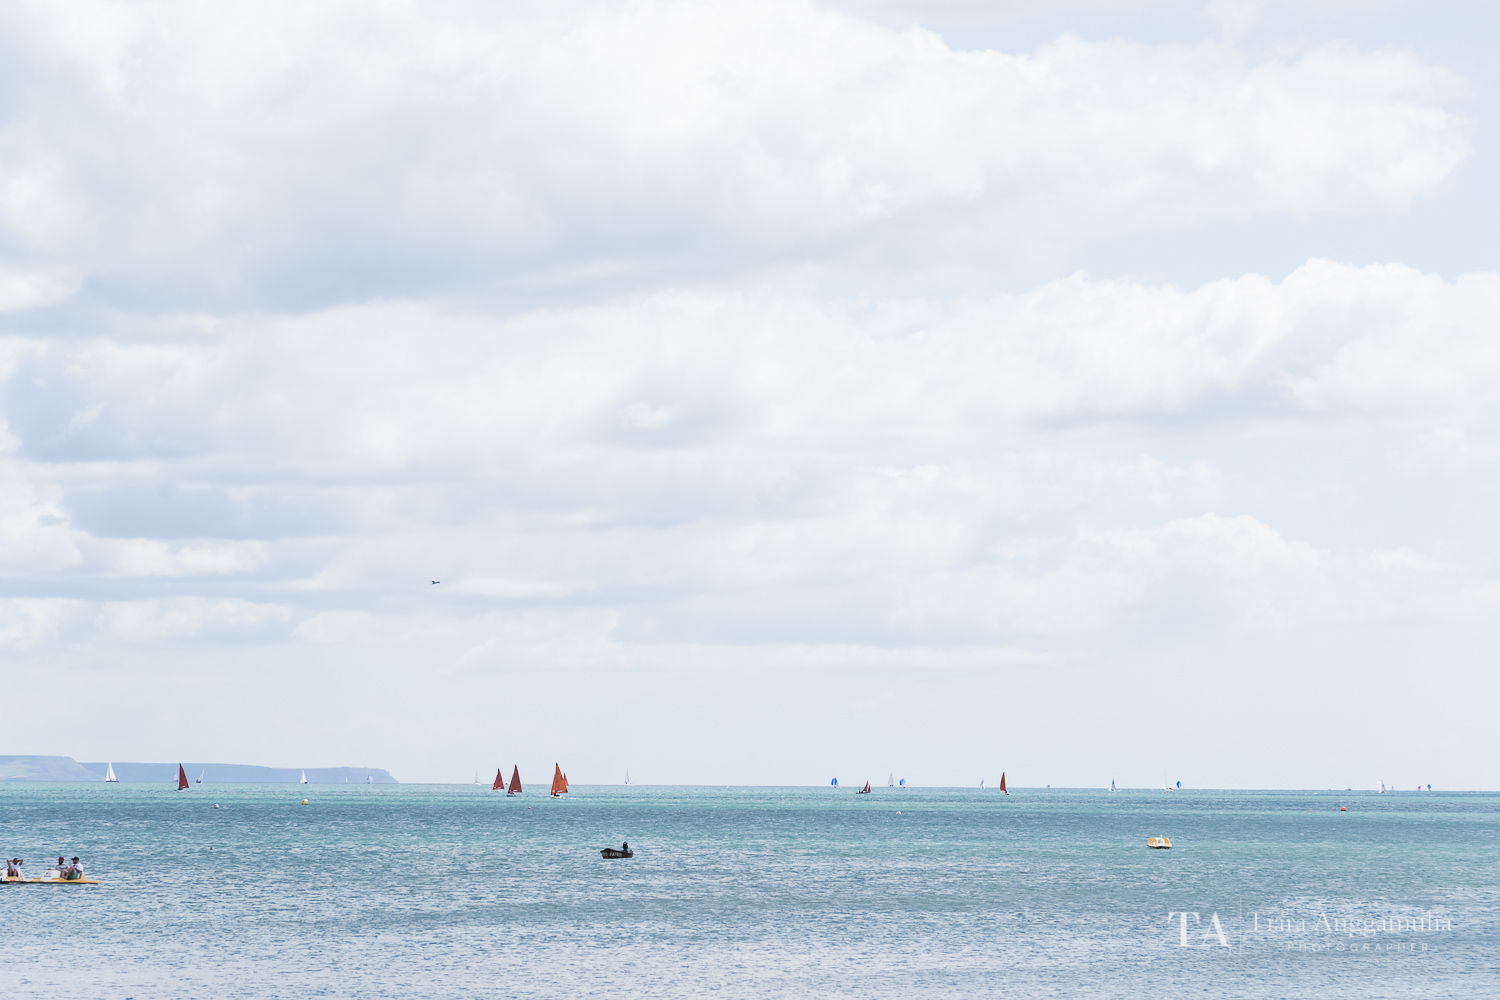 A view towards the ocean from Weymouth beach.